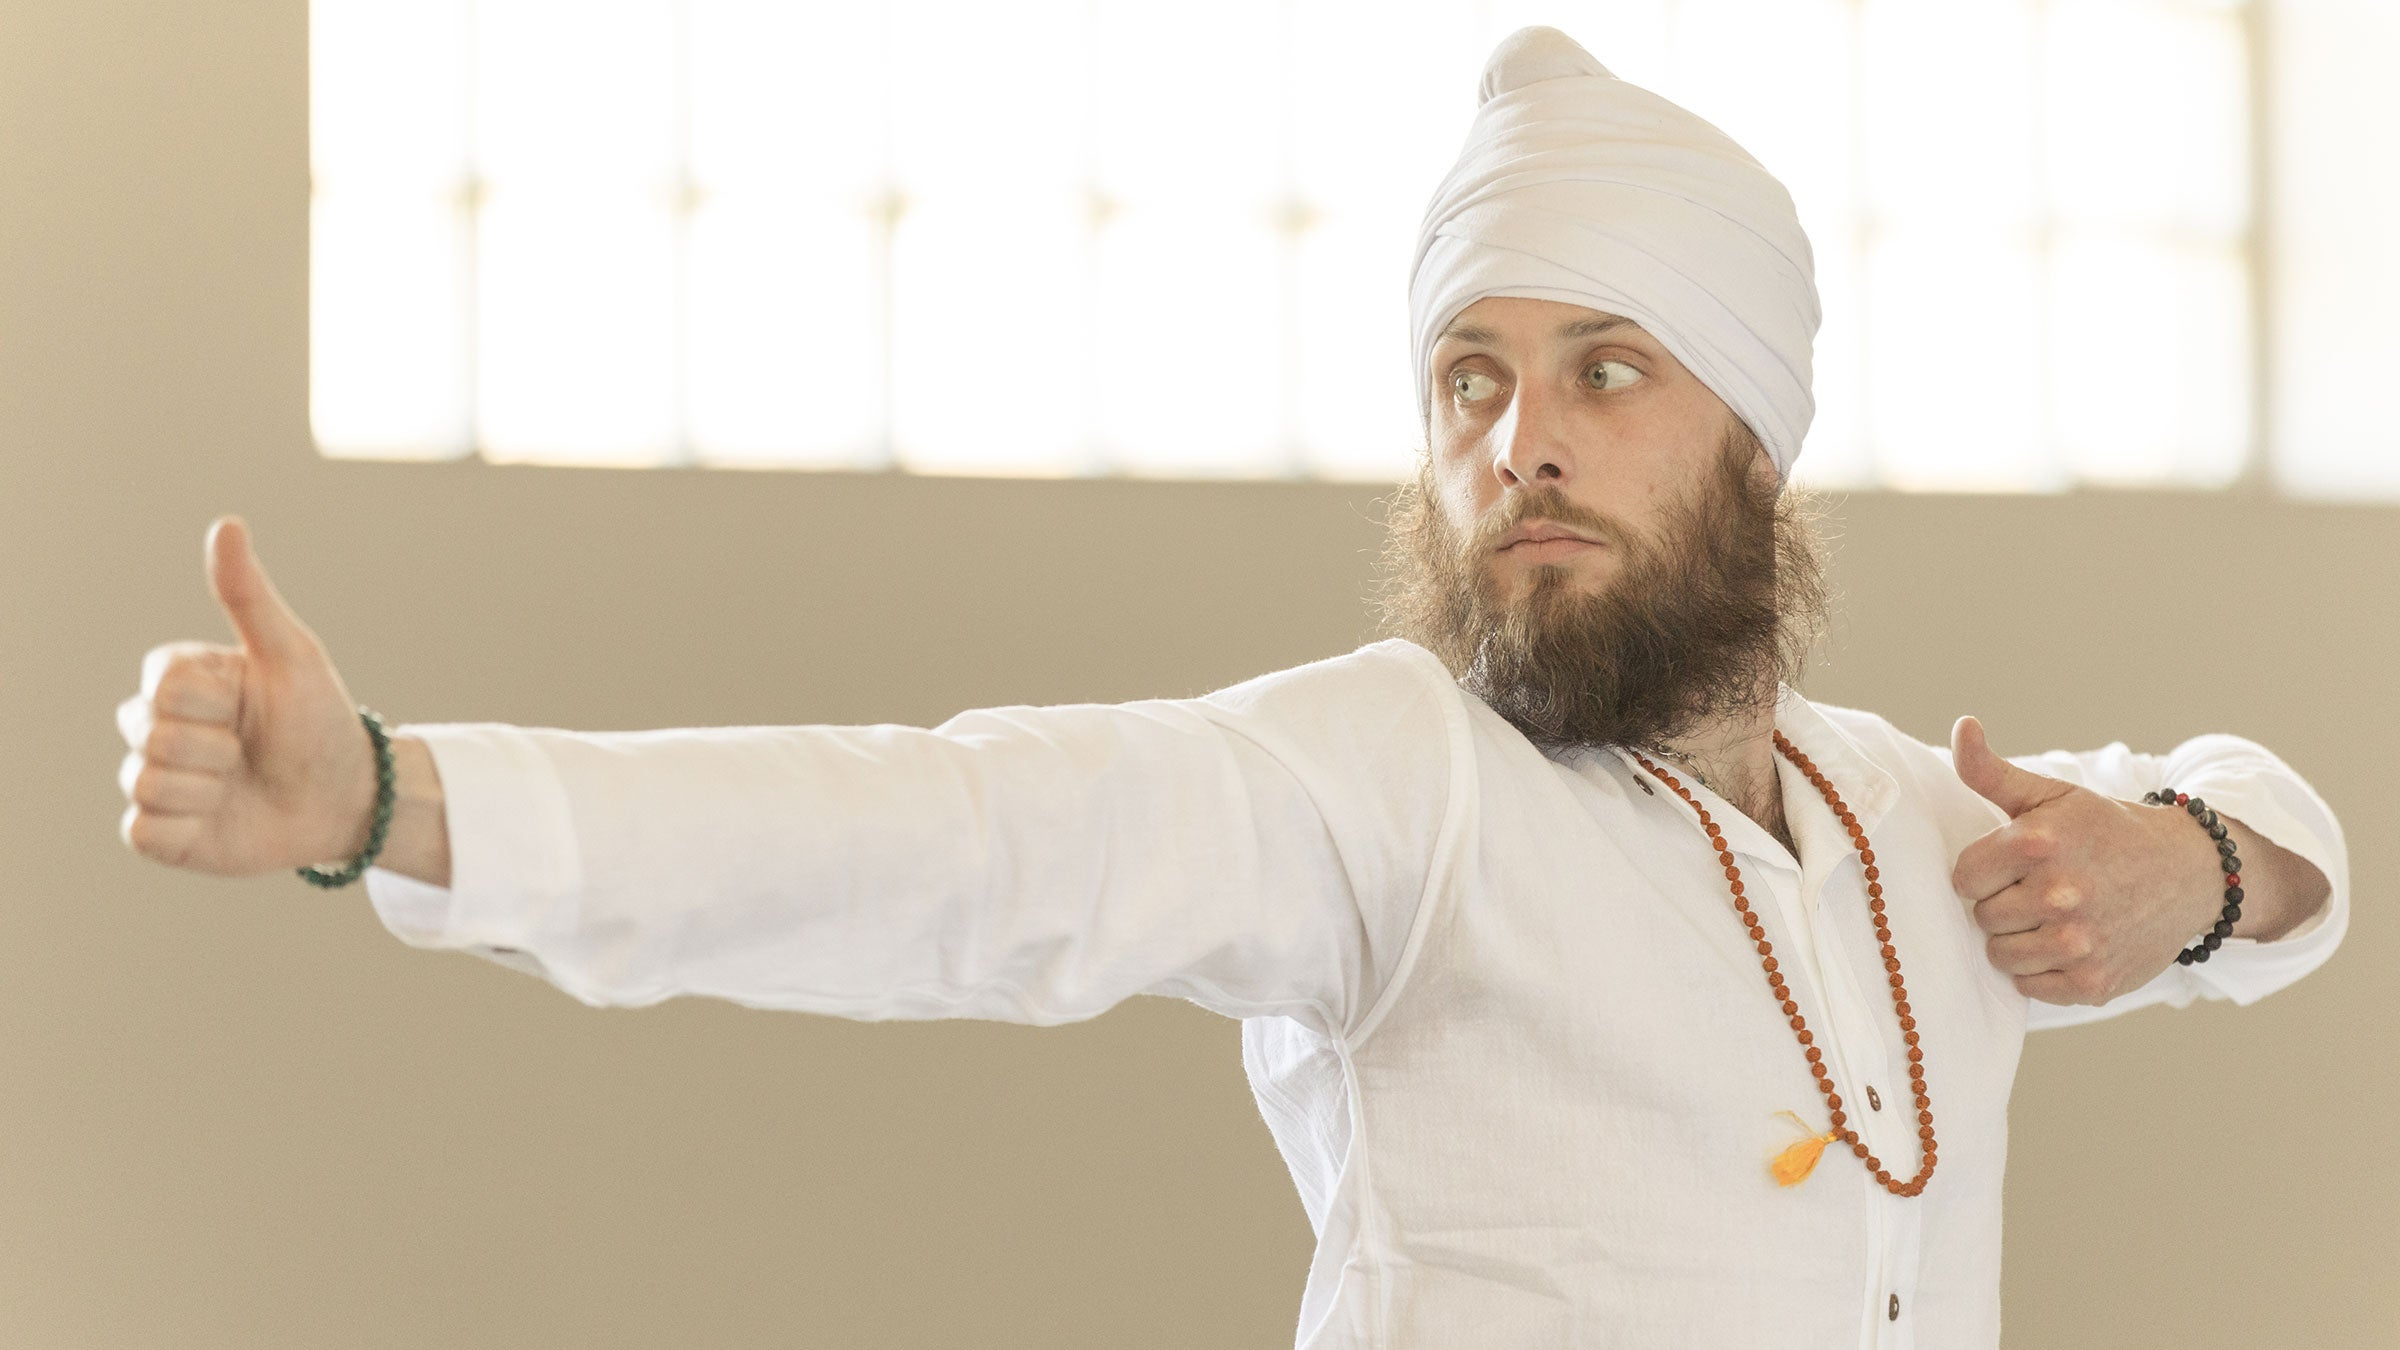 A man practices Kundalini Yoga wearing all white